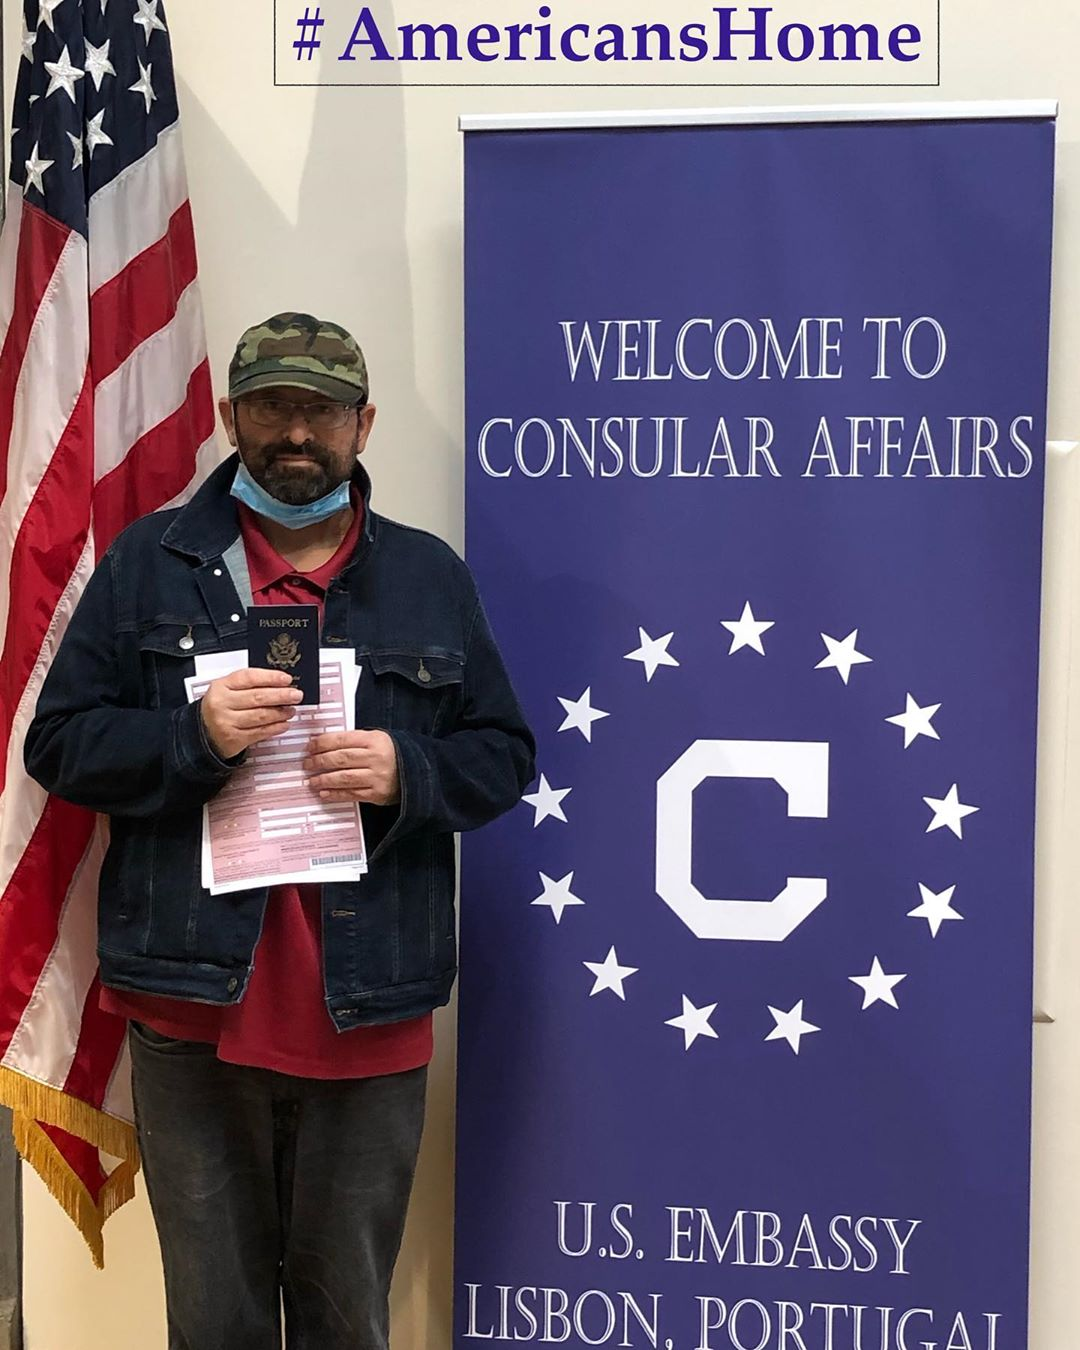 A U.S. citizen who recovered from COVID-19 takes a moment to express his gratitude to U.S. Embassy Lisbon and local health officials.